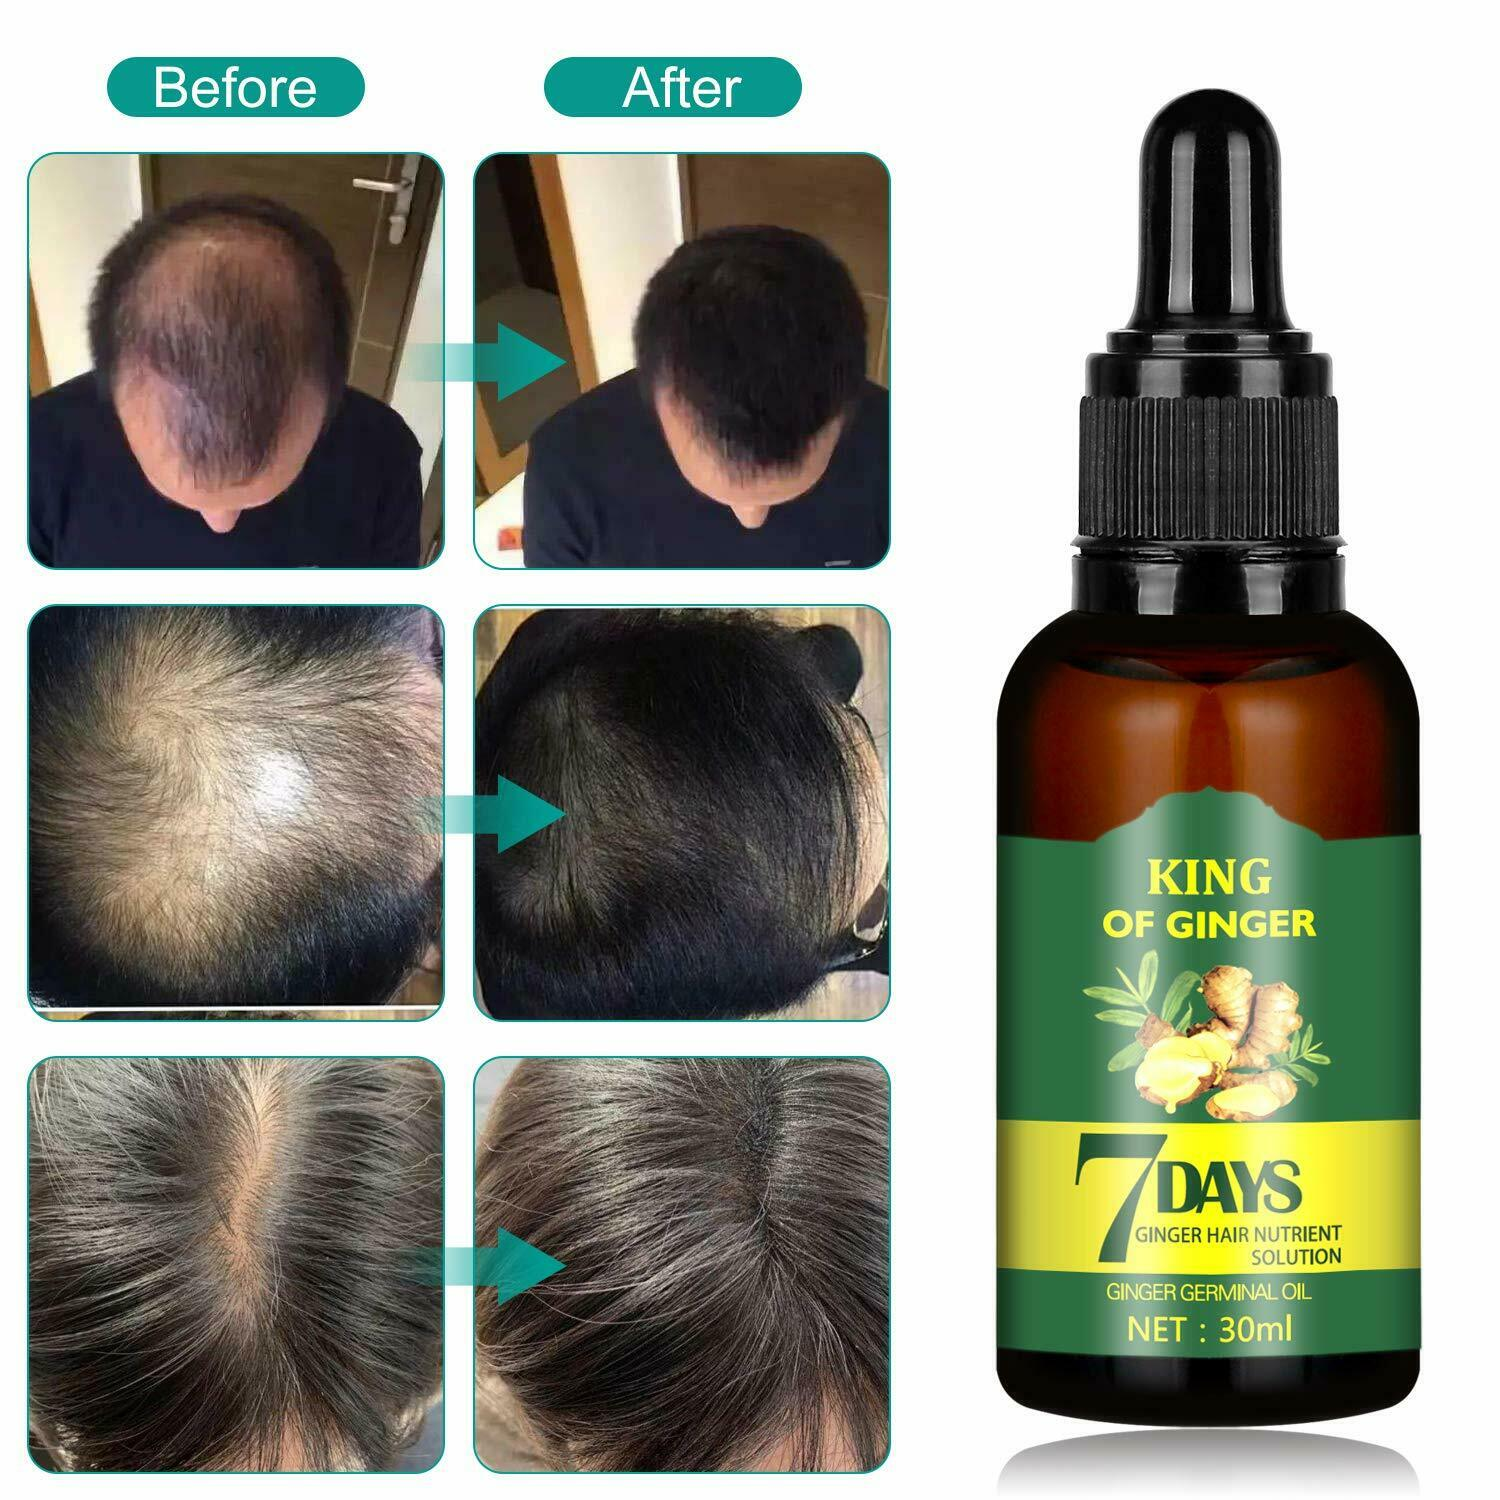 Regrow 7 Day Ginger Germinal Hair Growth Serum Loss Treatment Oil 30ML Hair Care & Styling